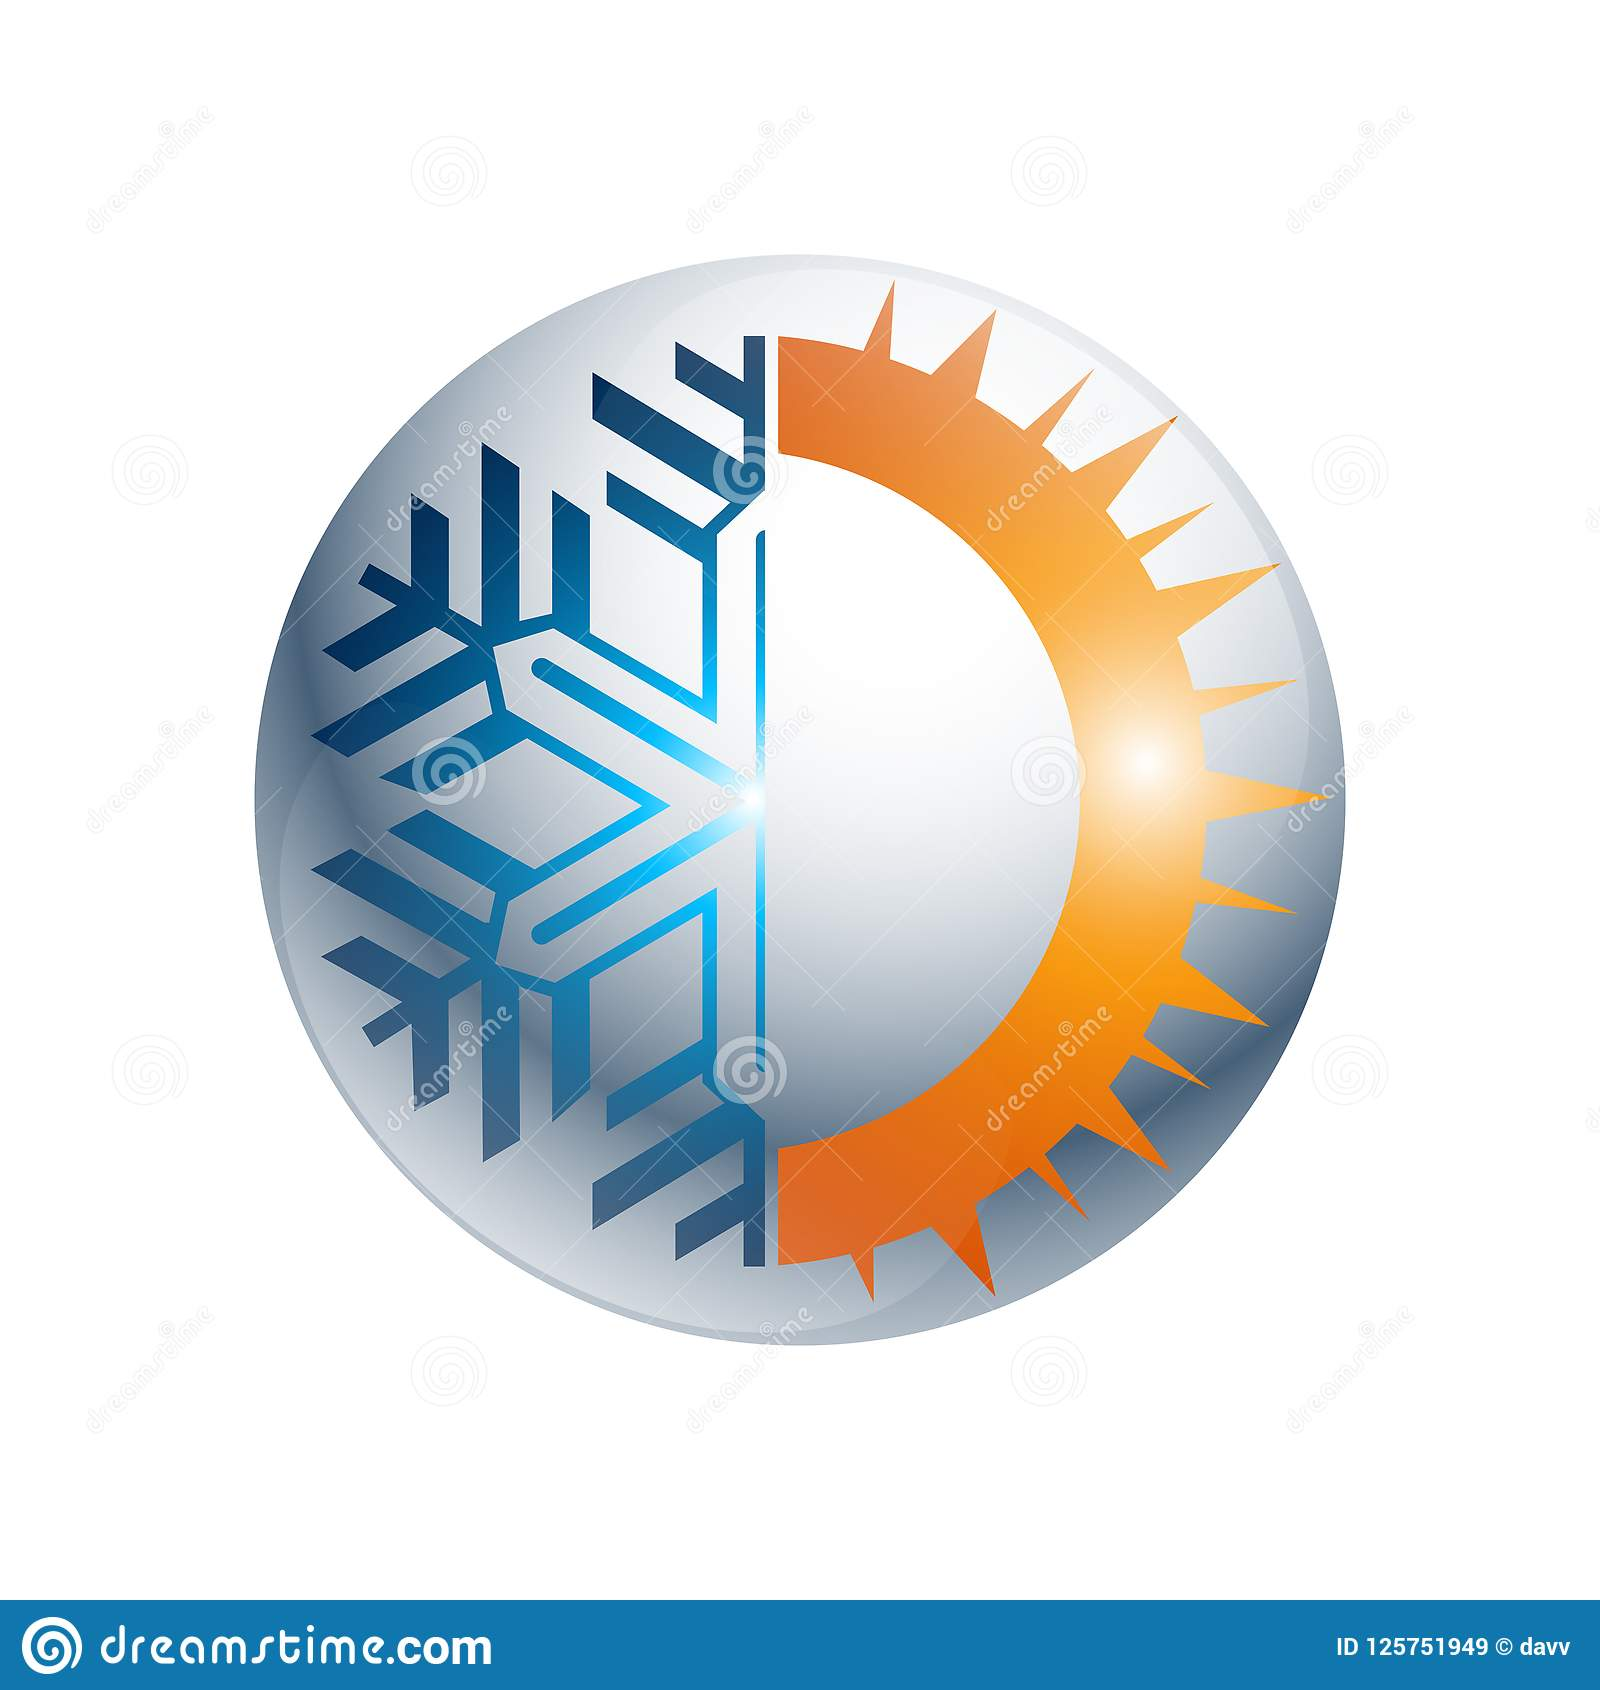 Gear Hot and cold round sign logo. Temperature balance icon. Sun